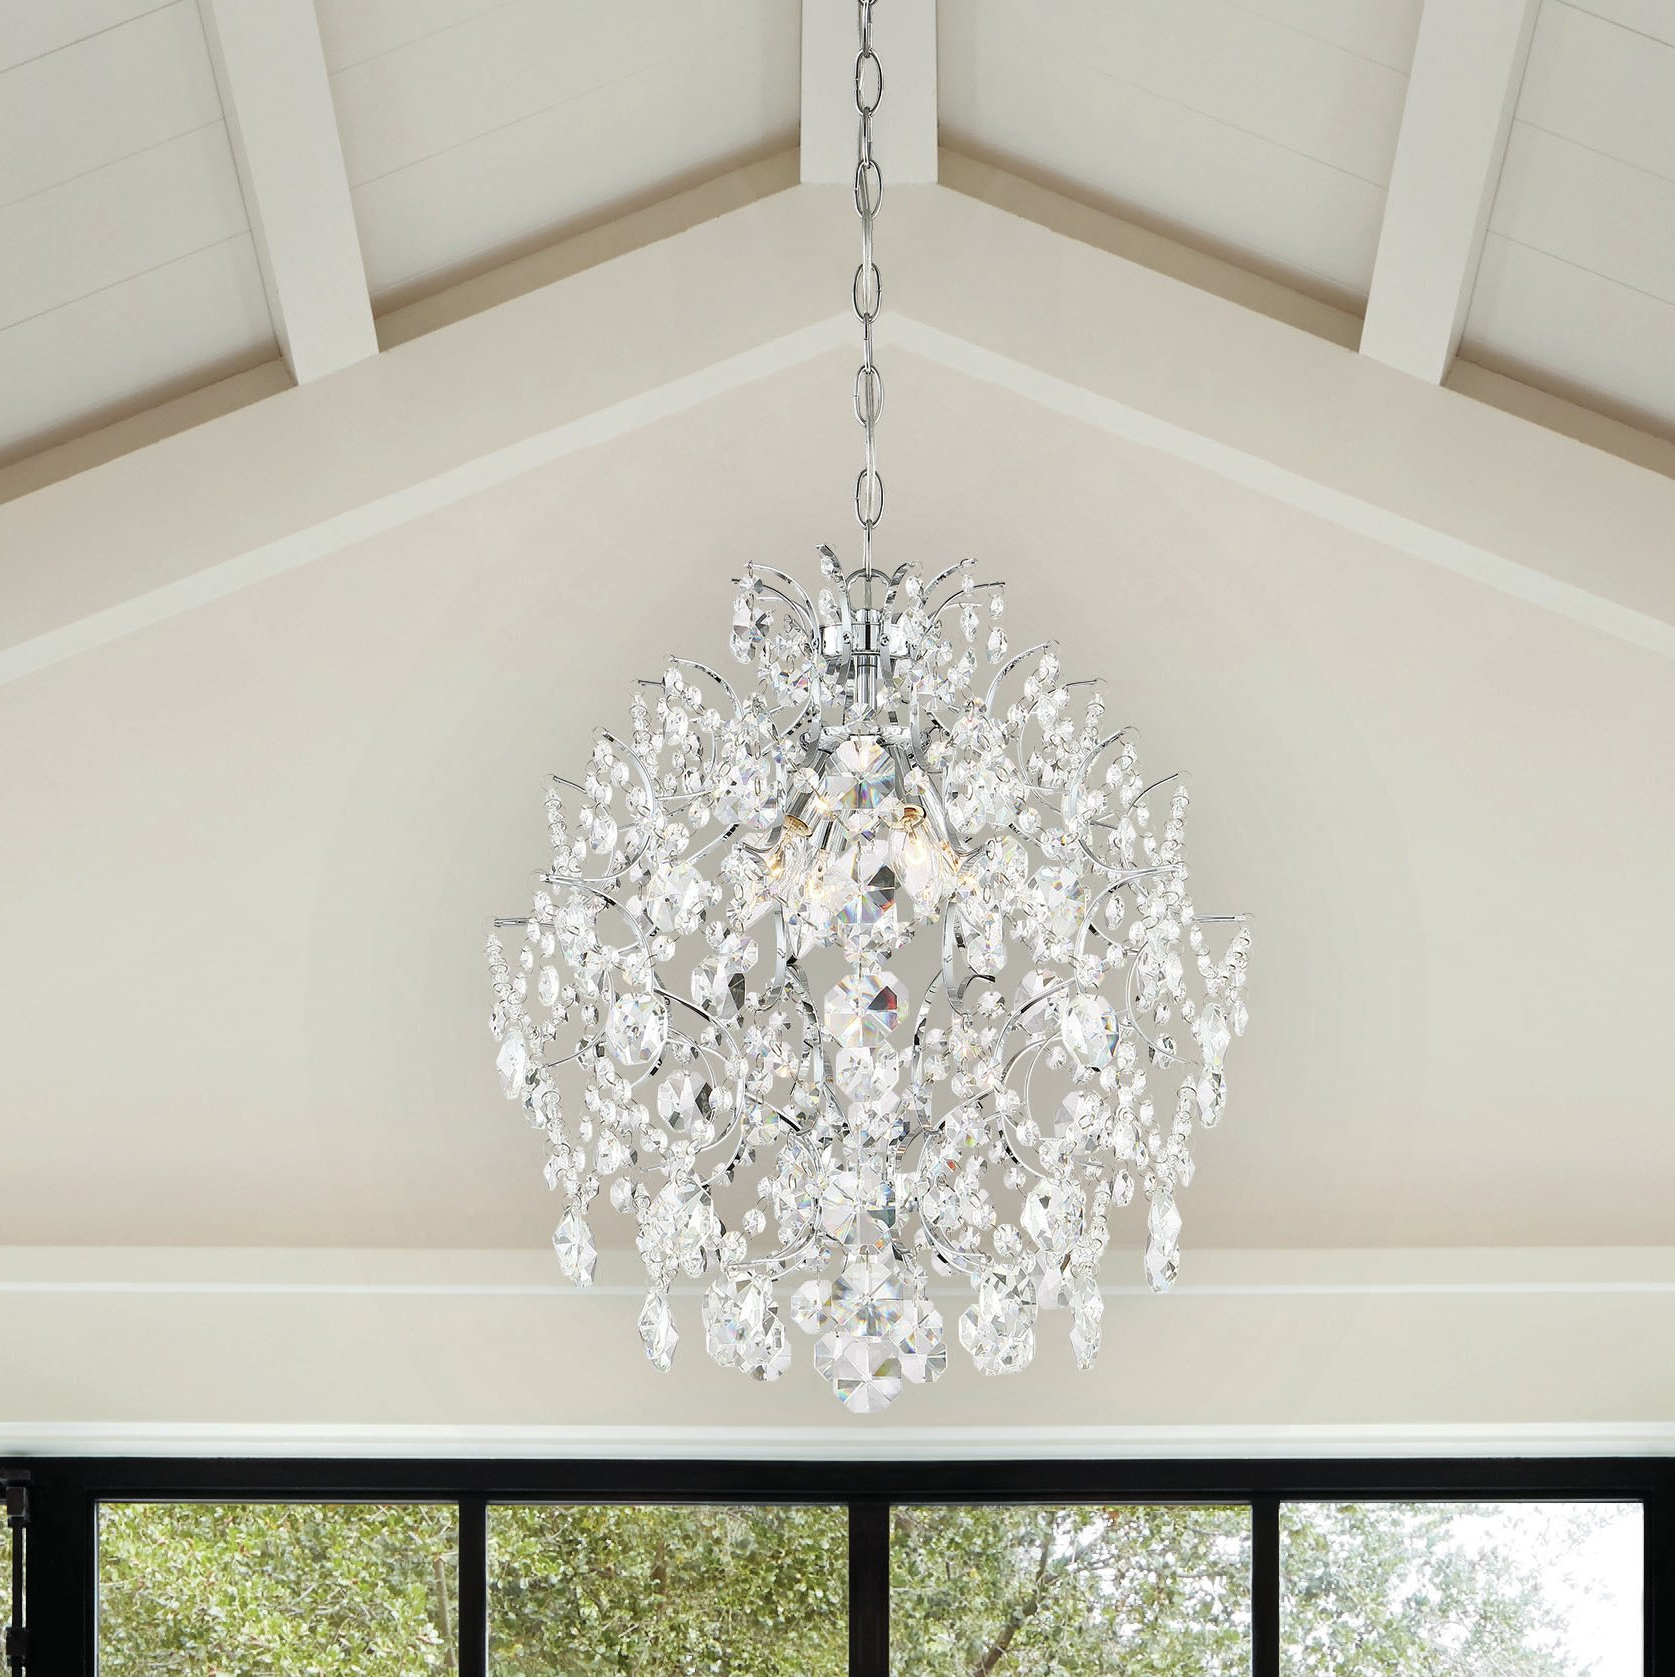 Aldgate 4 Light Crystal Chandeliers For 2020 4 Light Chrome Crystal Chandelier (View 3 of 25)